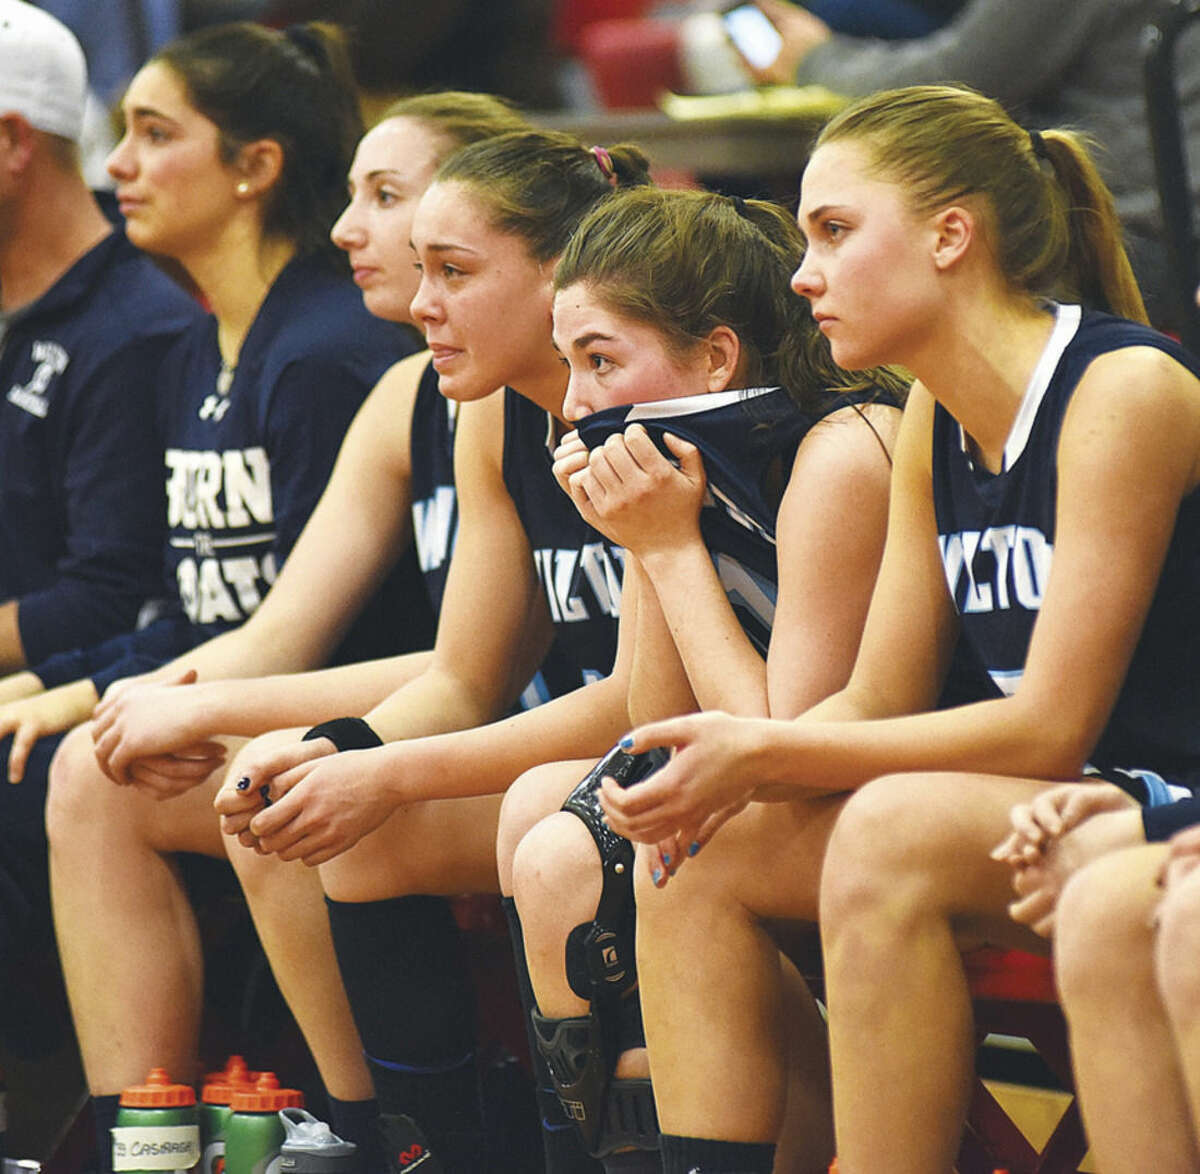 Wilton High senior girls basketball players, from left, Caraline Higgins, Christina Holmgren, Hana Previte, Sarah Fitzgerald and Karen Brosko react as the final seconds tick down on the Warriors' 41-34 Class LL state tournament second round loss at Alumni Gym in Norwich on Thursday.